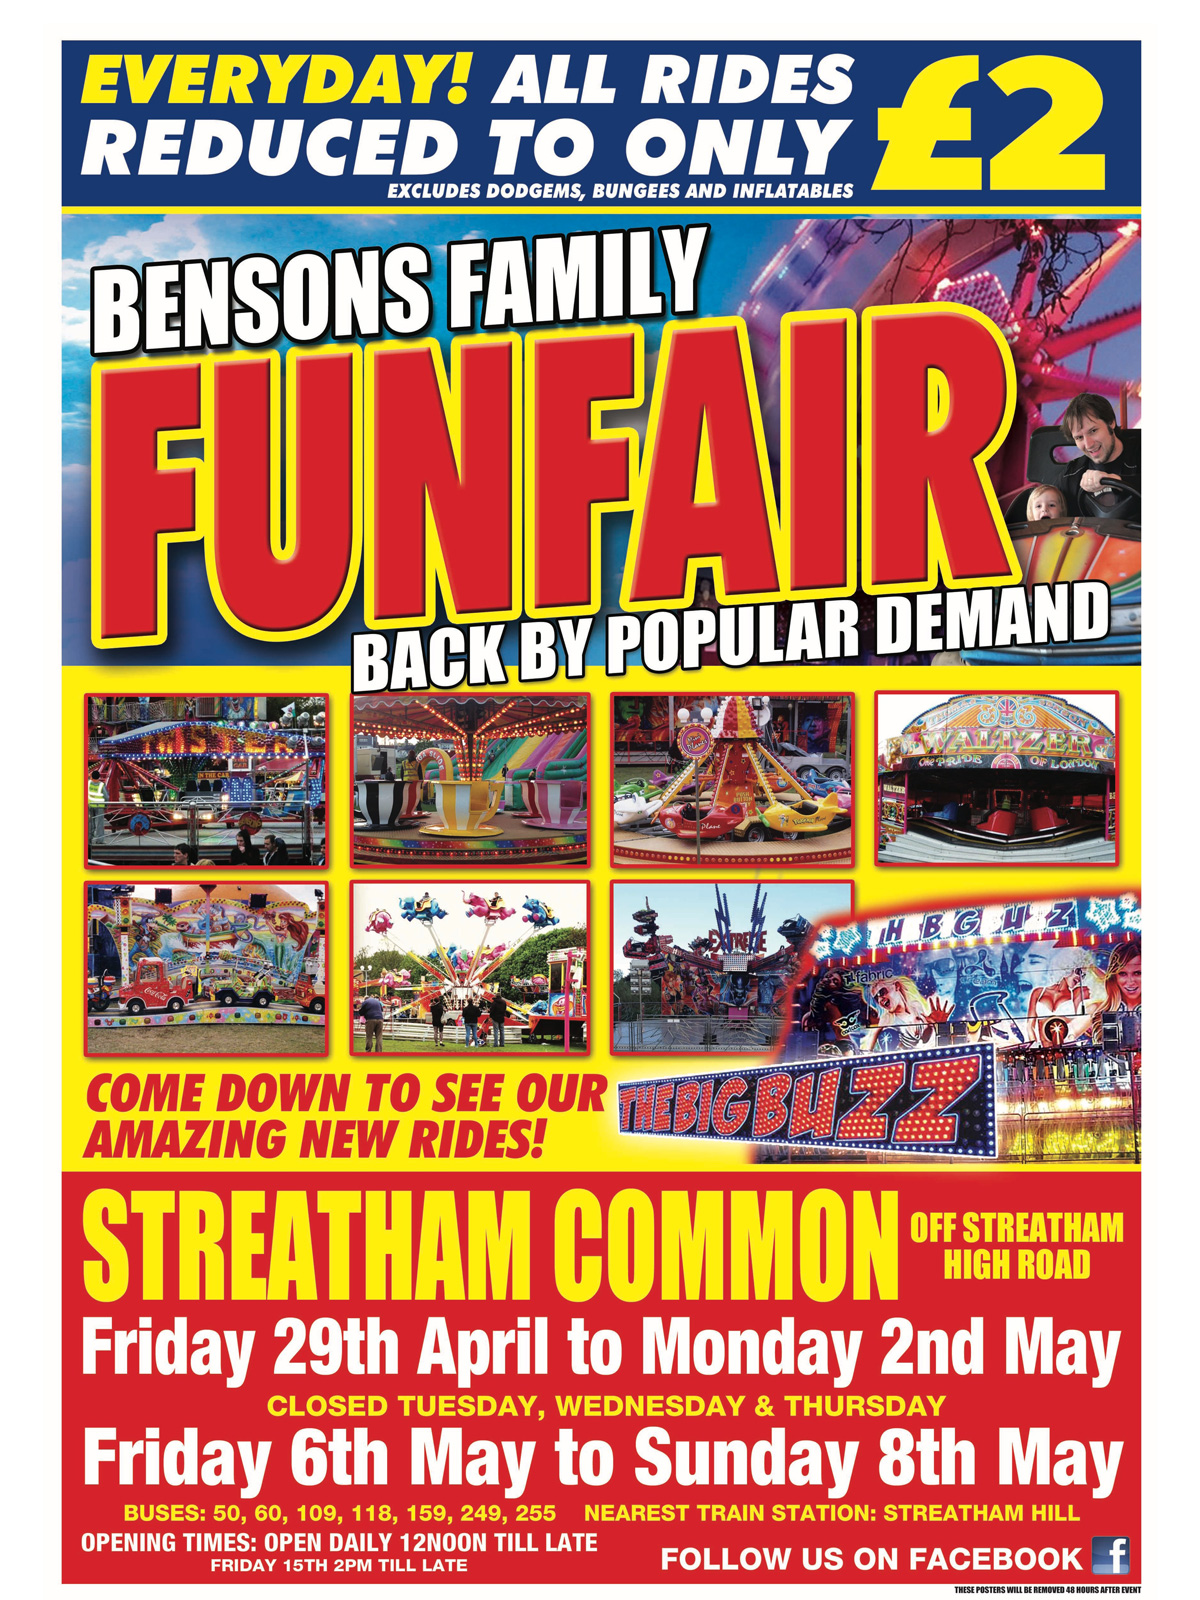 Streatham-Common-Fun-fair-Poster-Image